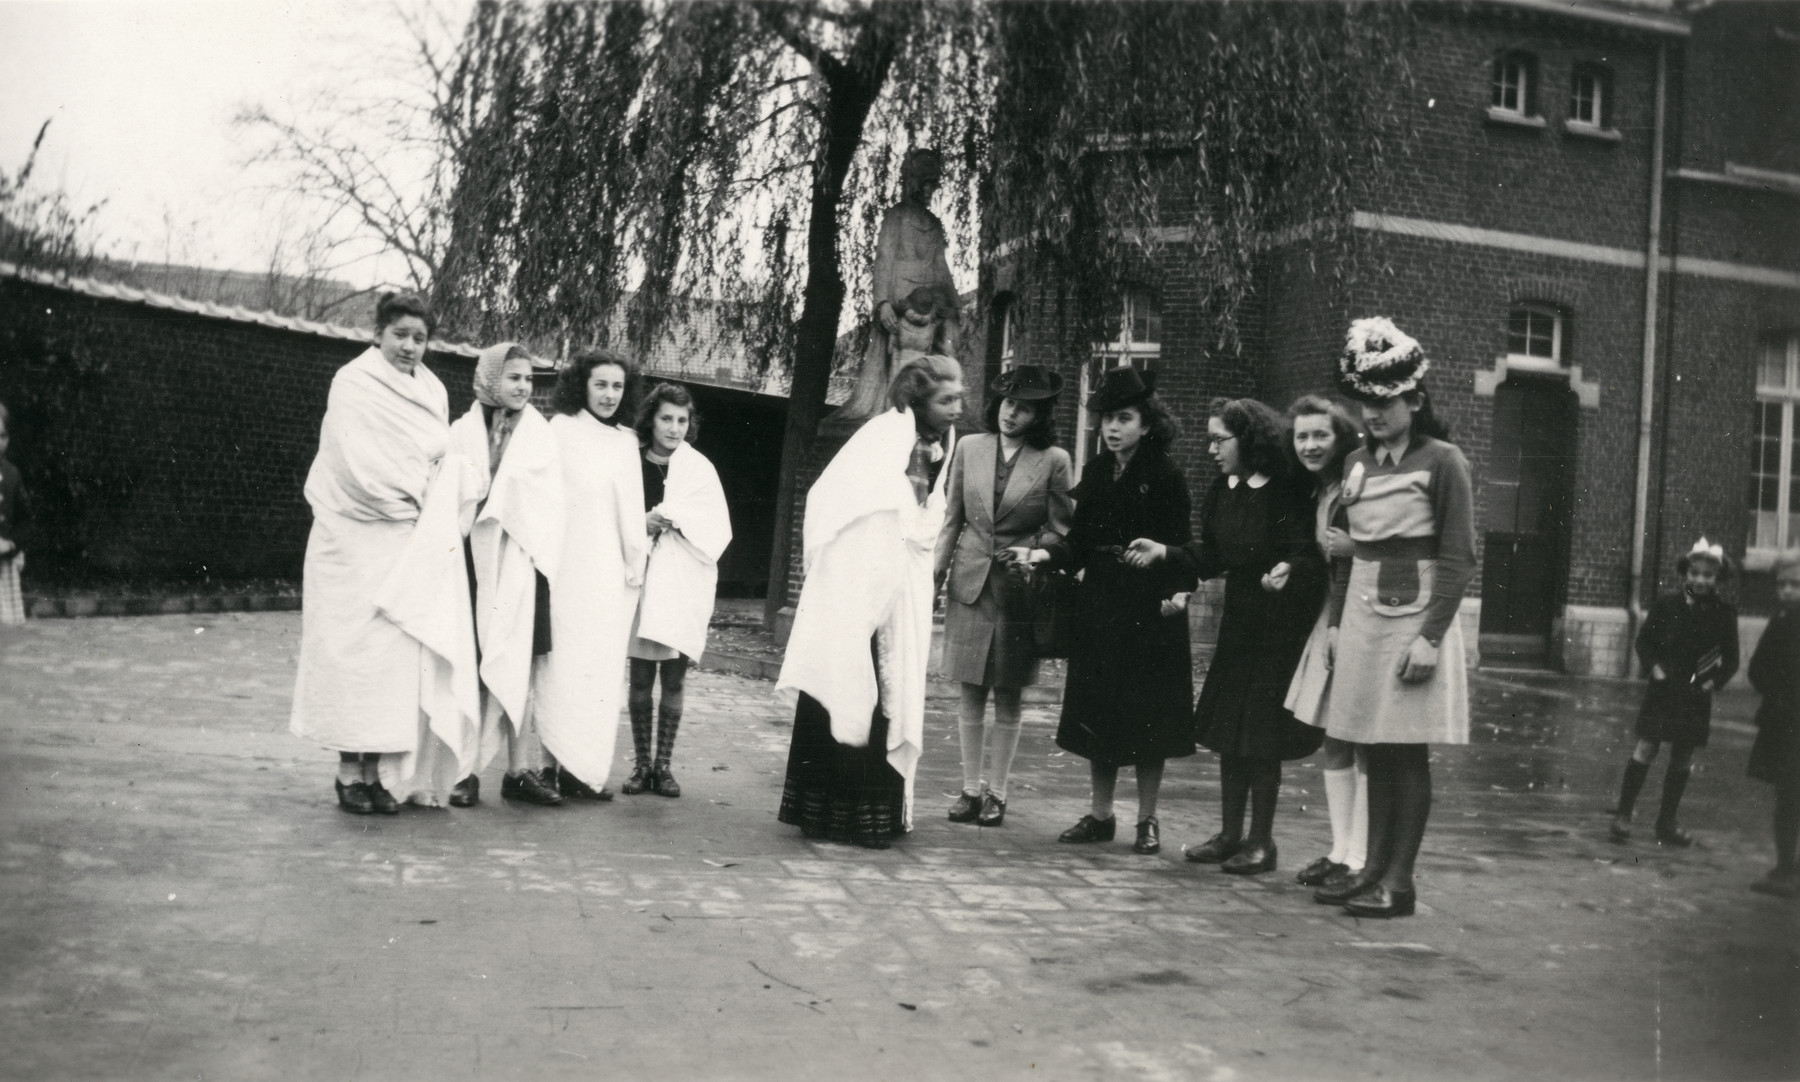 Teenage girls,many wearing costumes, gather in the courtyard of the Convent St. Antoine de Padue.   Liliane Ferdman is pictured fourth from left and her sister Suzie is second from right.